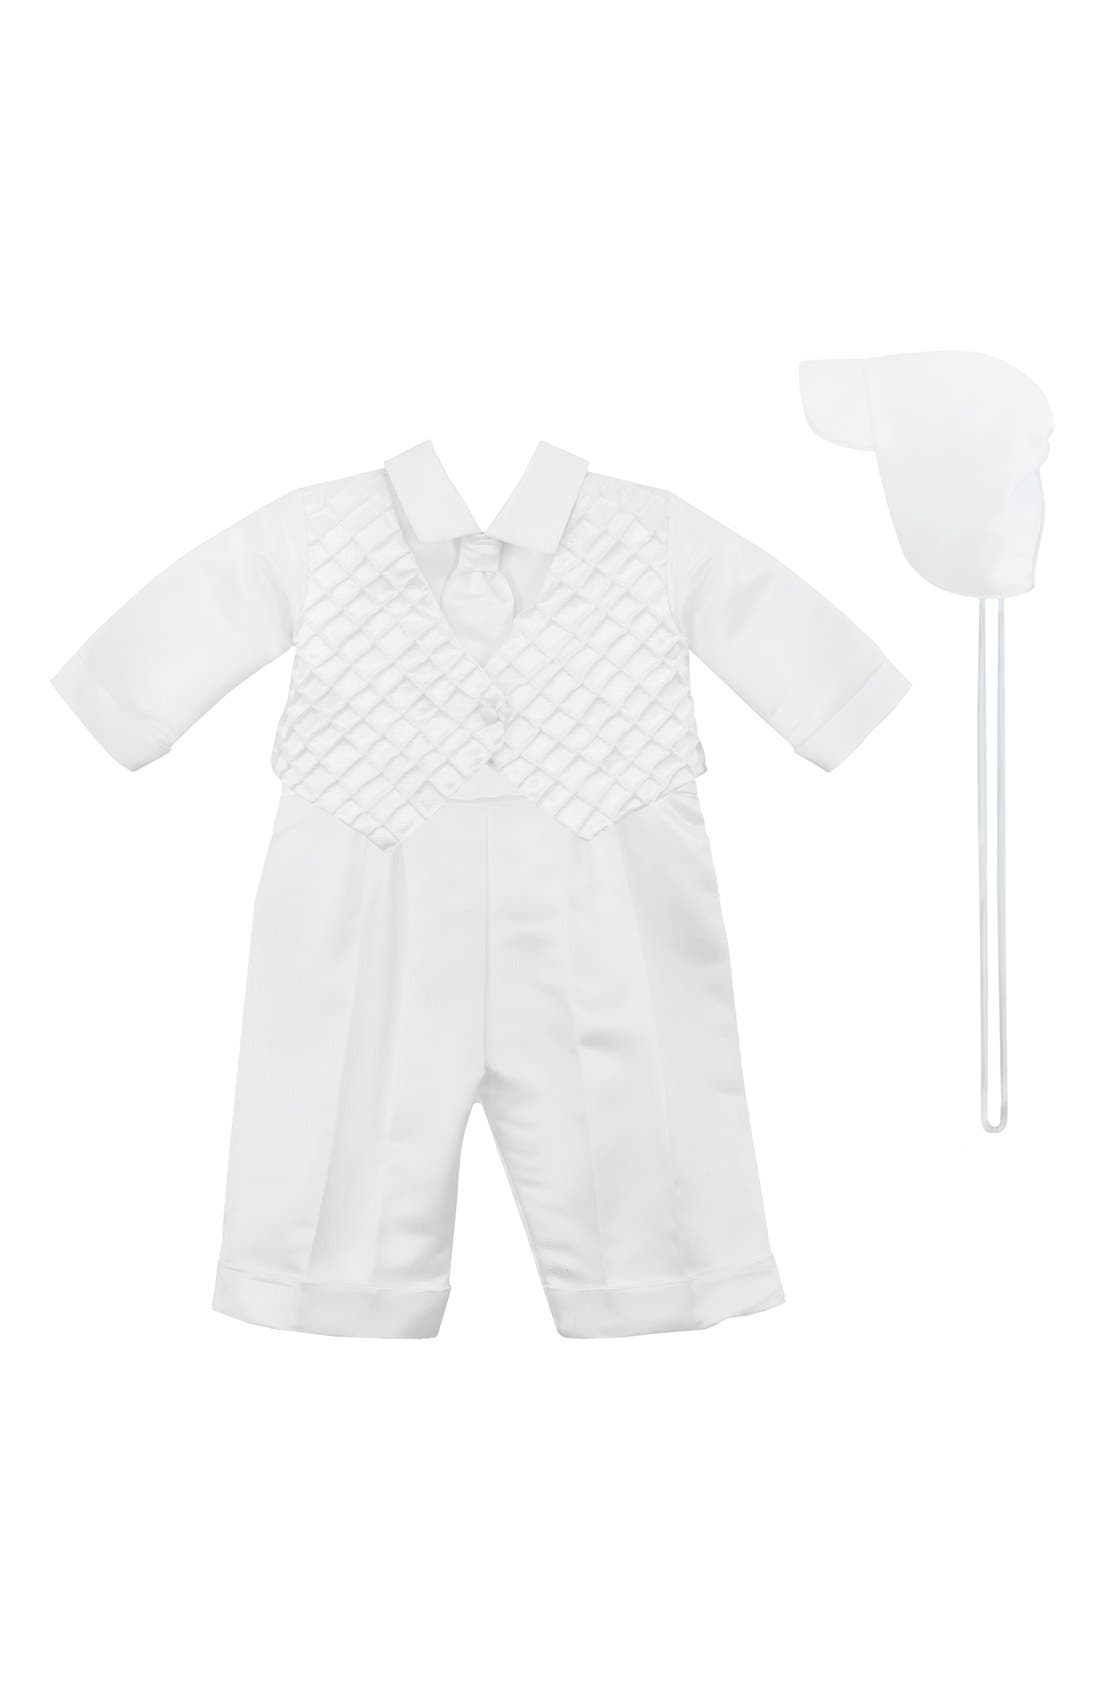 C.I. CASTRO & CO. Christening Shirt, Pants &